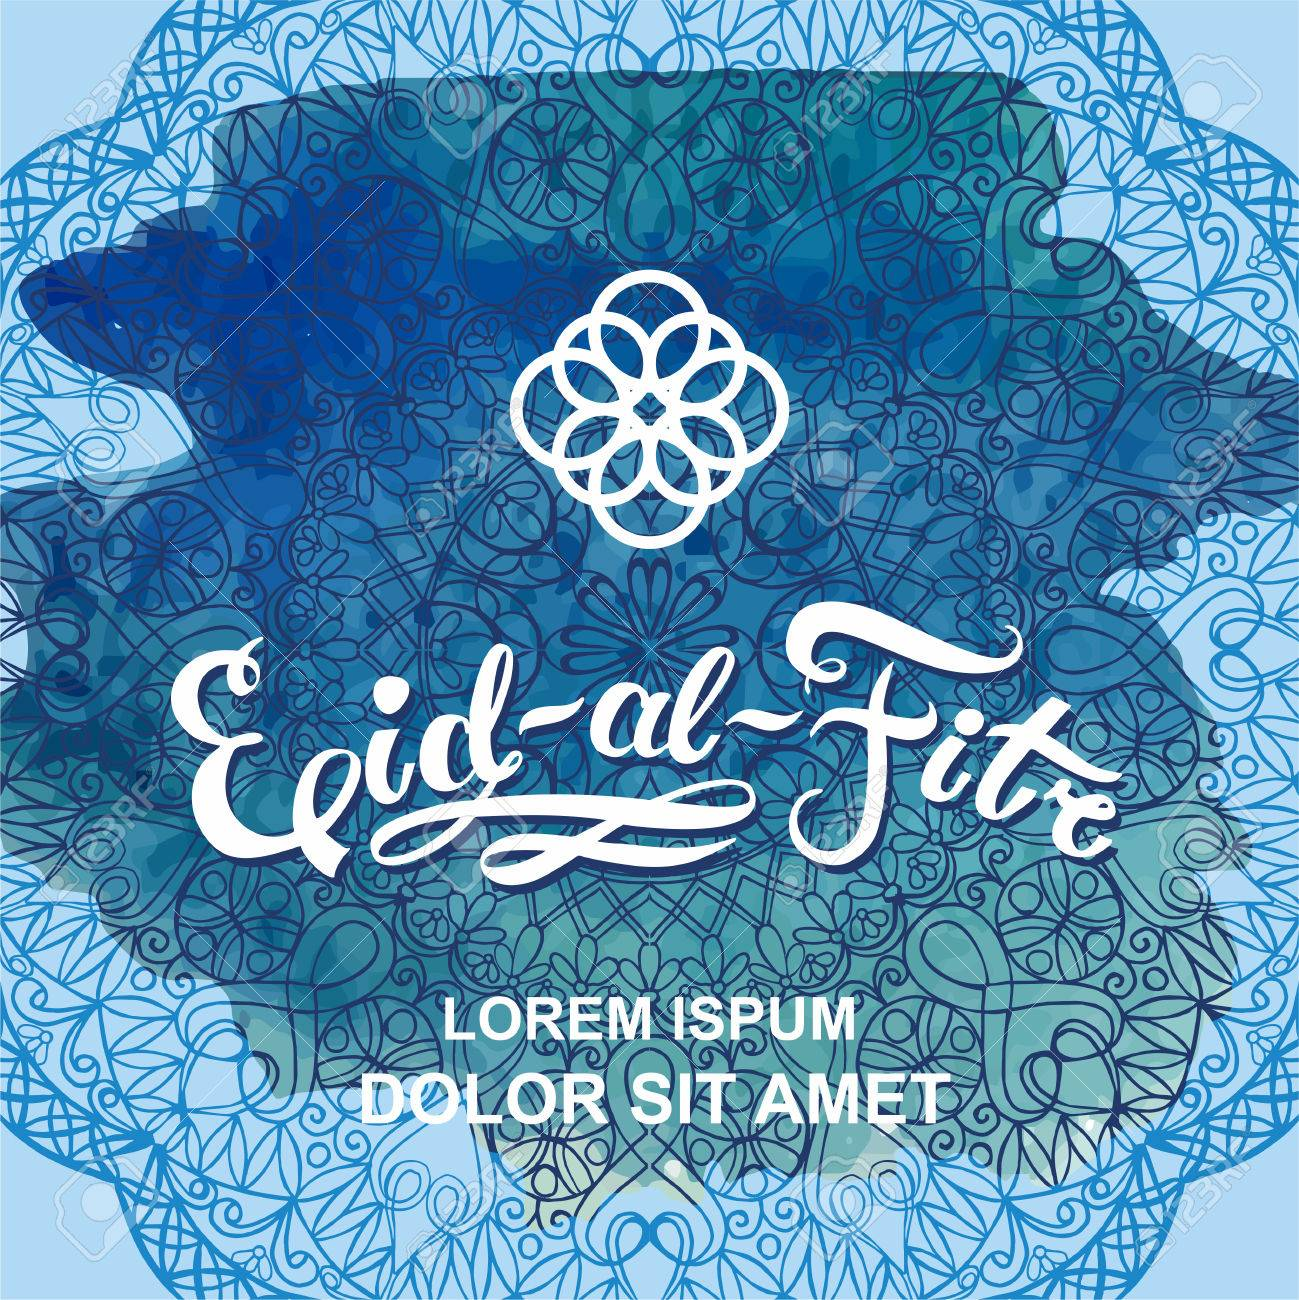 Eid Al Fitr Invitation Card Business Card With Mandala Design Element Ramadan Graphic Background Abstract Oriental Design Layout